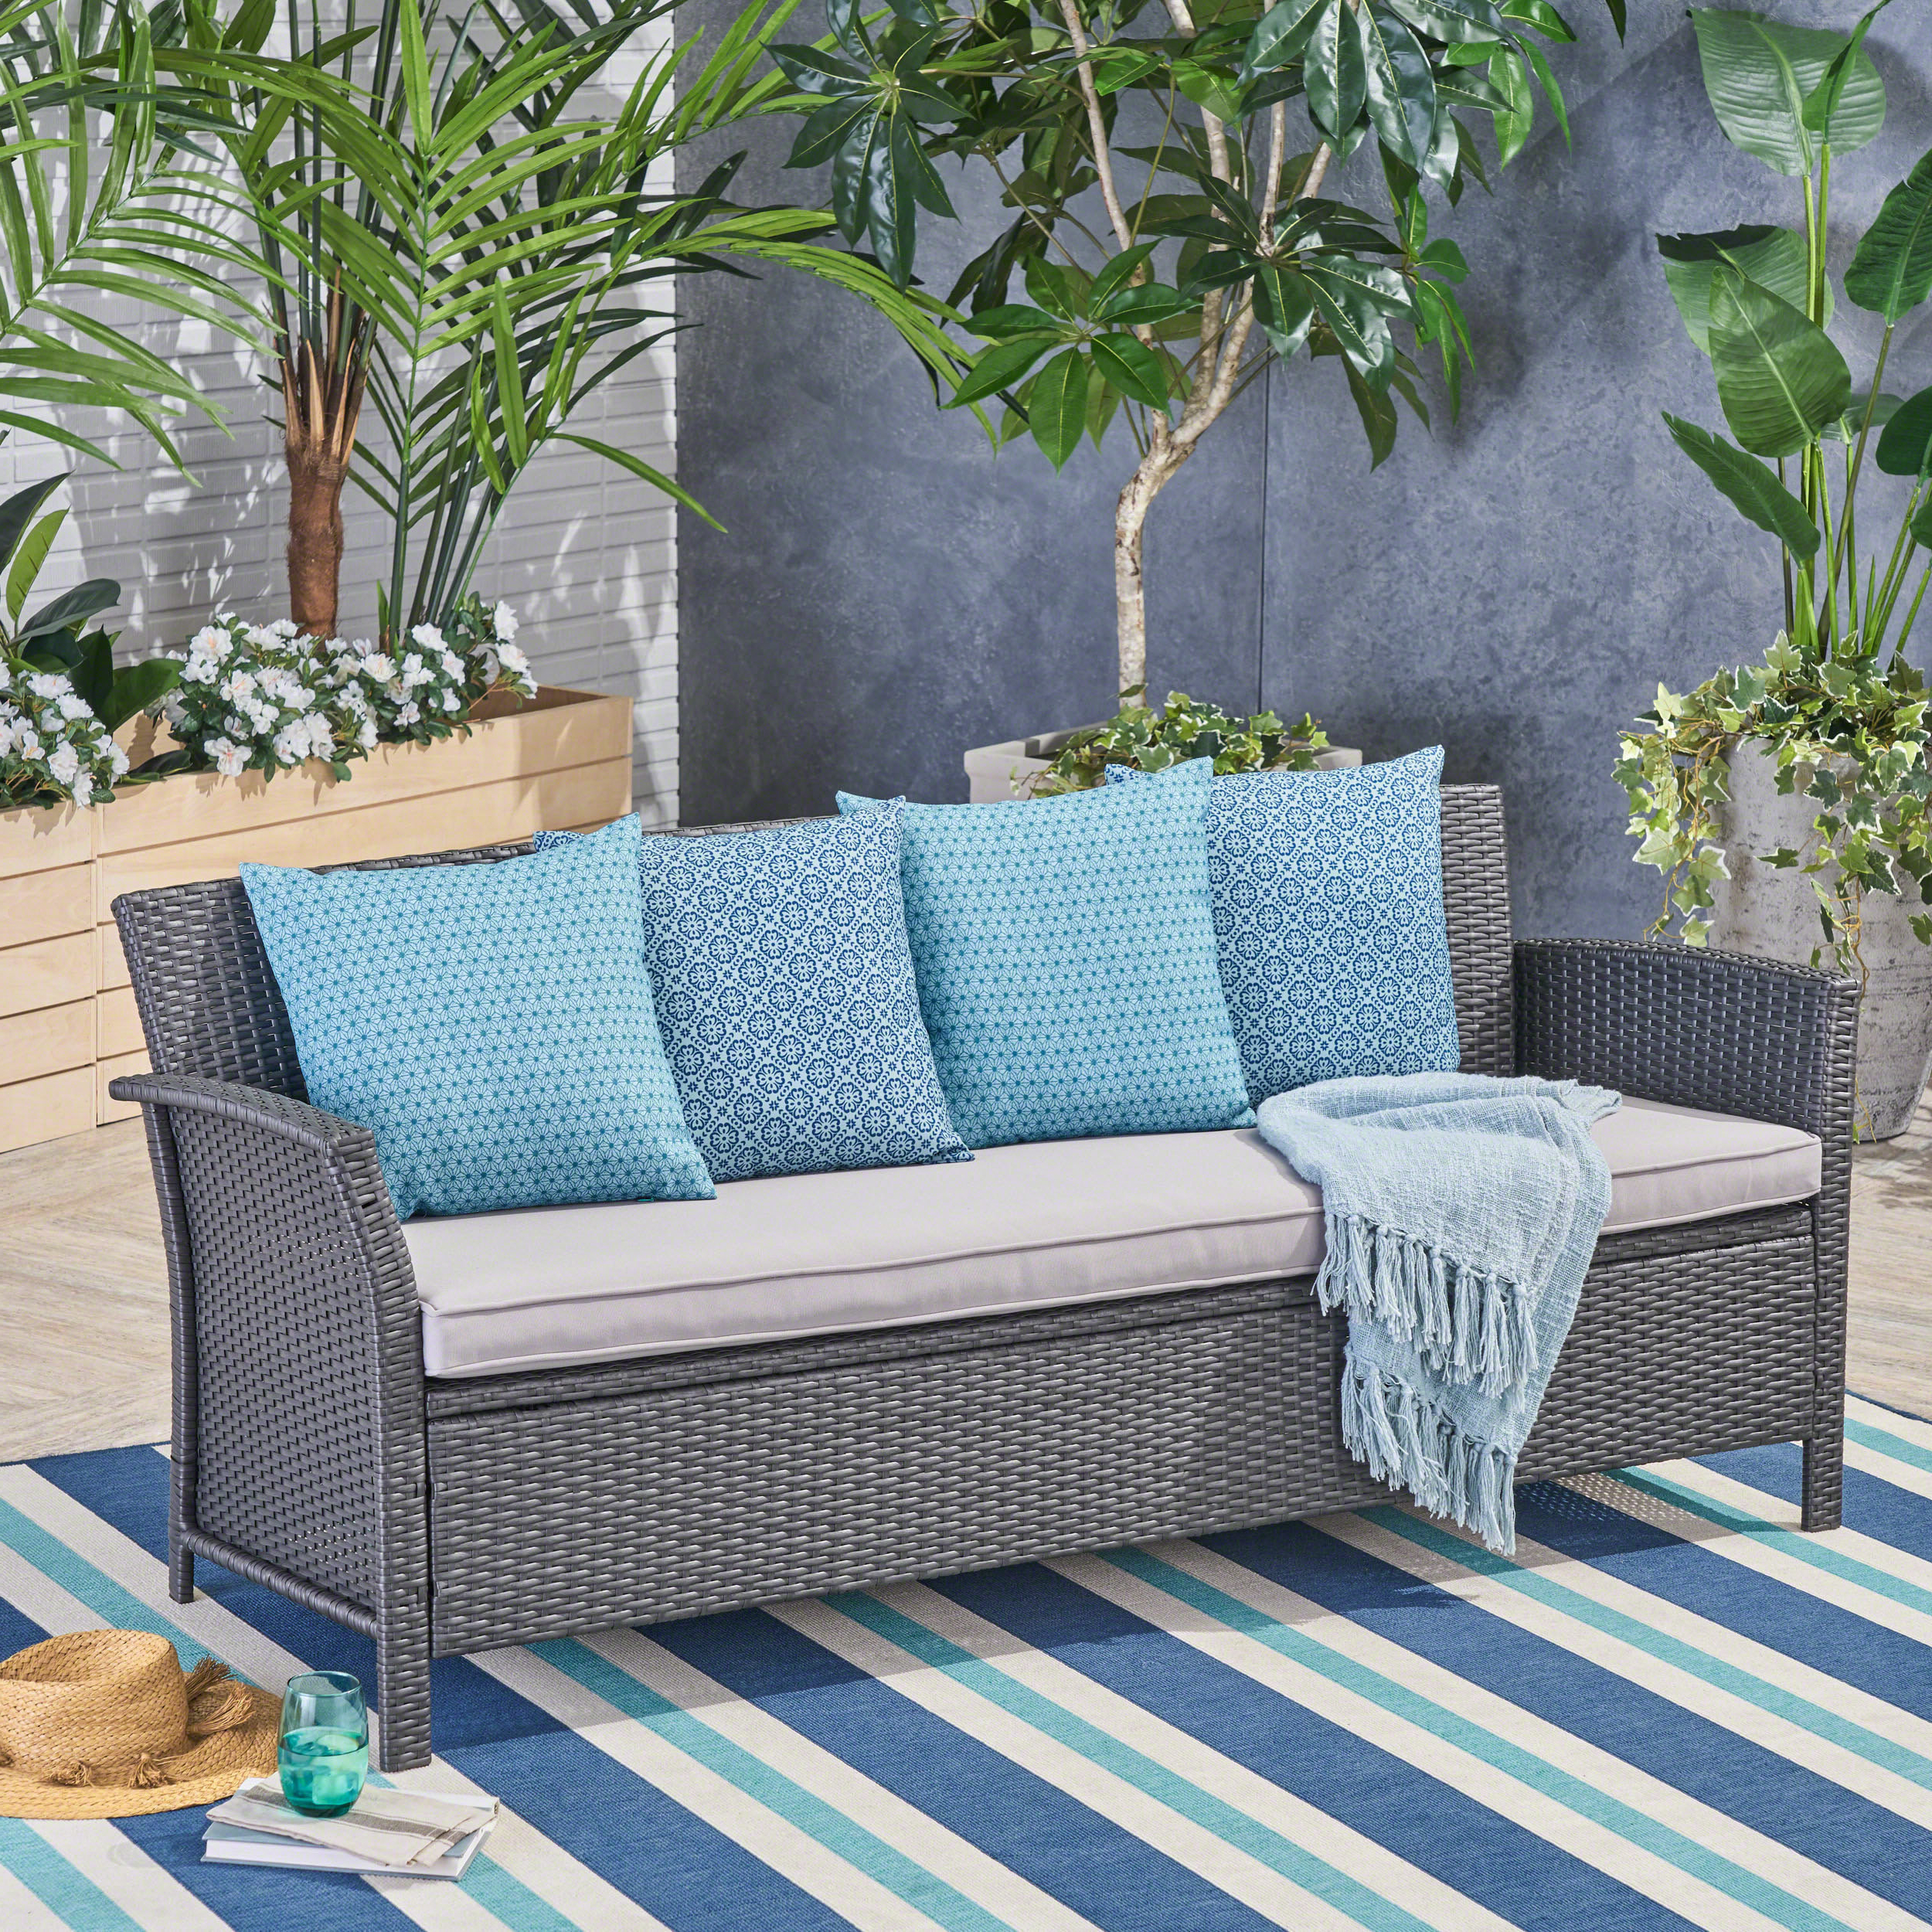 Fashionable Corchado Patio Sofa With Cushion Intended For Stockwell Patio Sofas With Cushions (View 12 of 20)